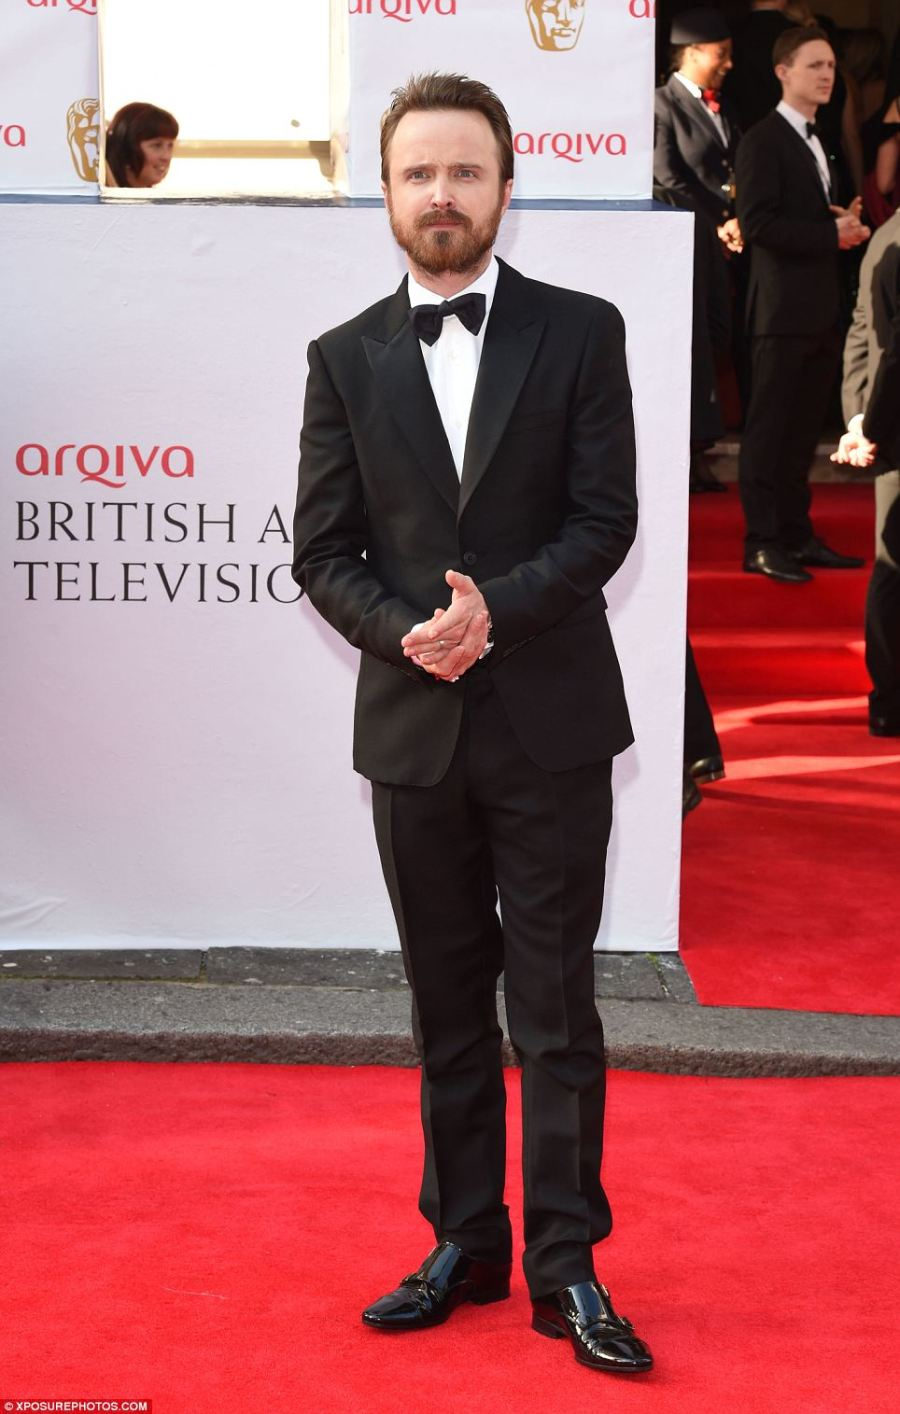 Looking good: A bearded Aaron Paul is dapper in a suit and tie on the red carpet